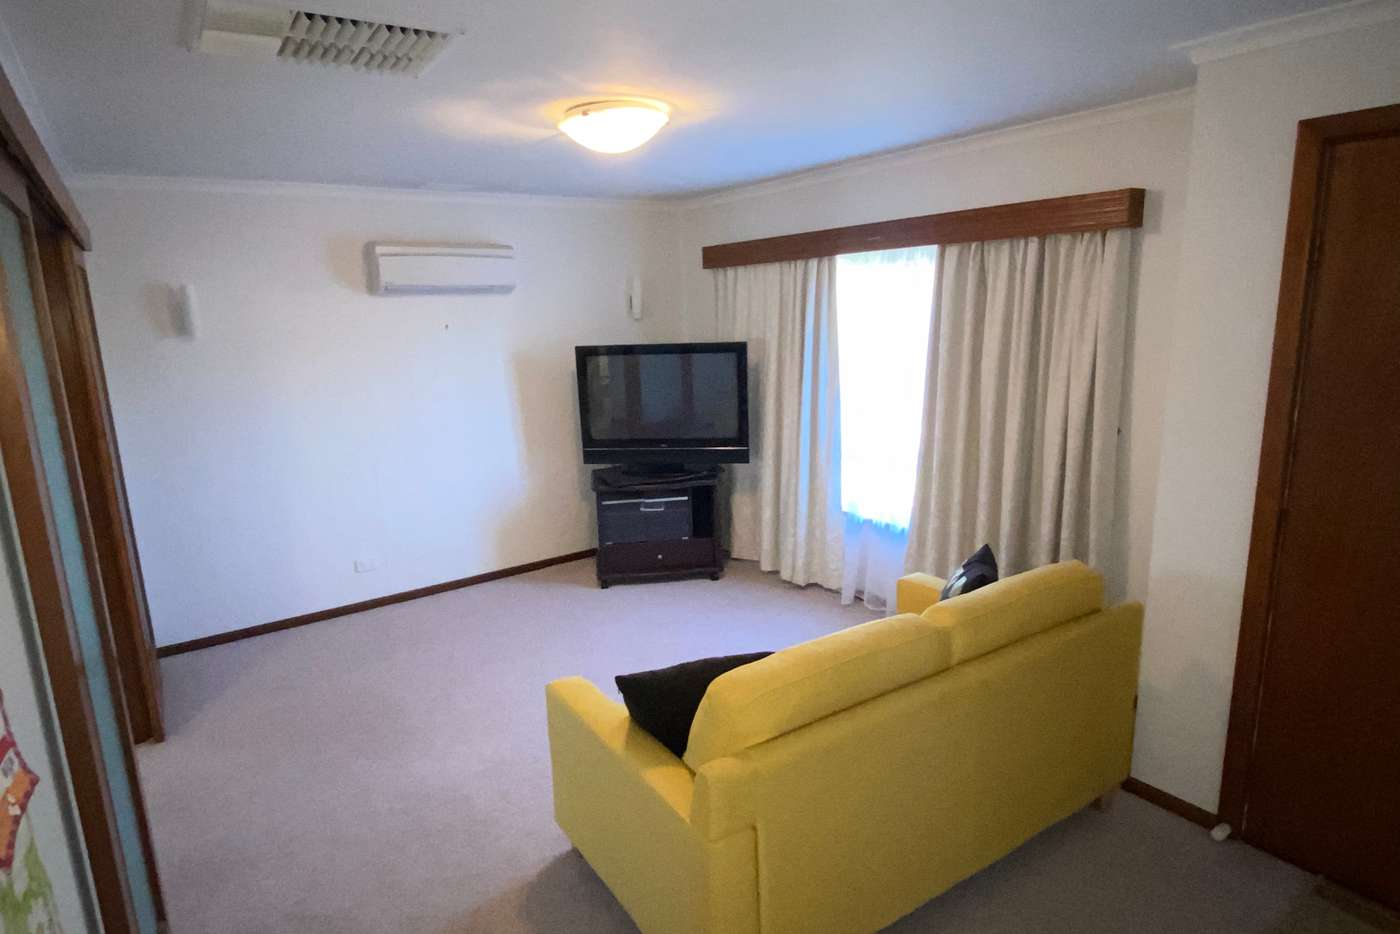 Seventh view of Homely house listing, 46 Forrest St, Beverley WA 6304